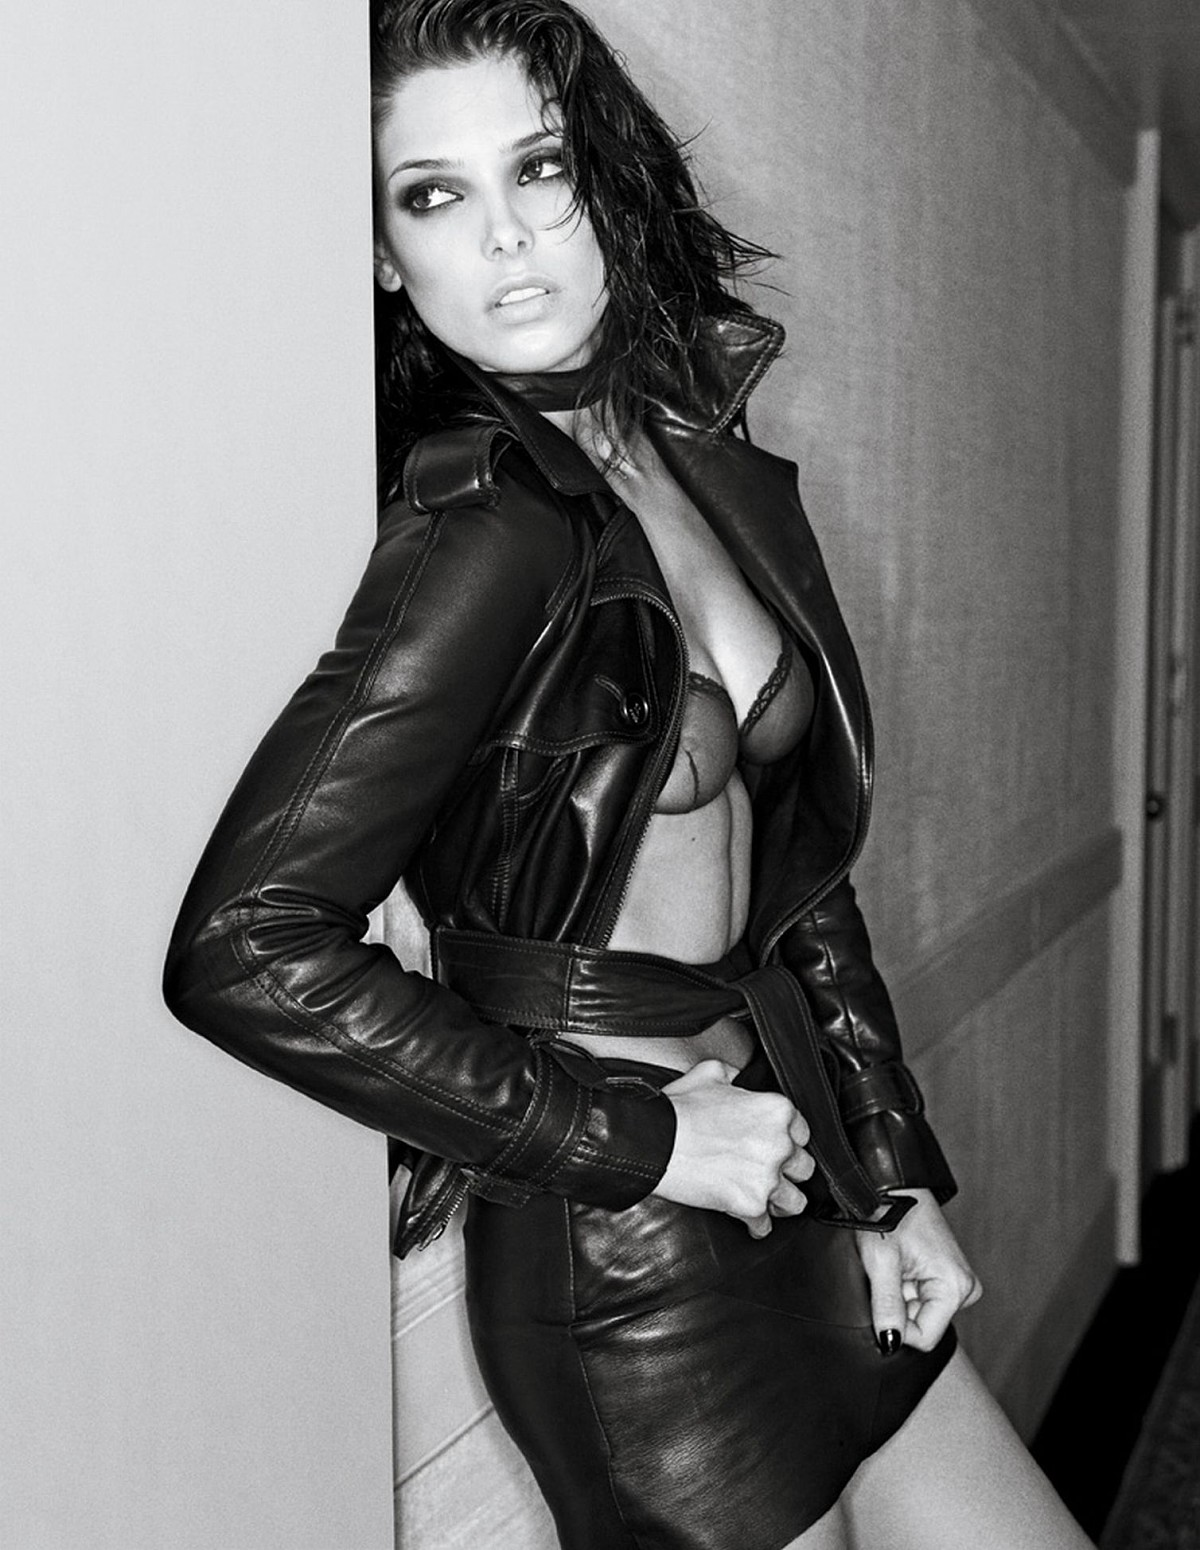 http://2.bp.blogspot.com/-O2ple8xcpos/TwdGmbHv0UI/AAAAAAAAEZw/T6REs9KeMY8/s1600/ashley-greene-nipple-interview-02.jpg